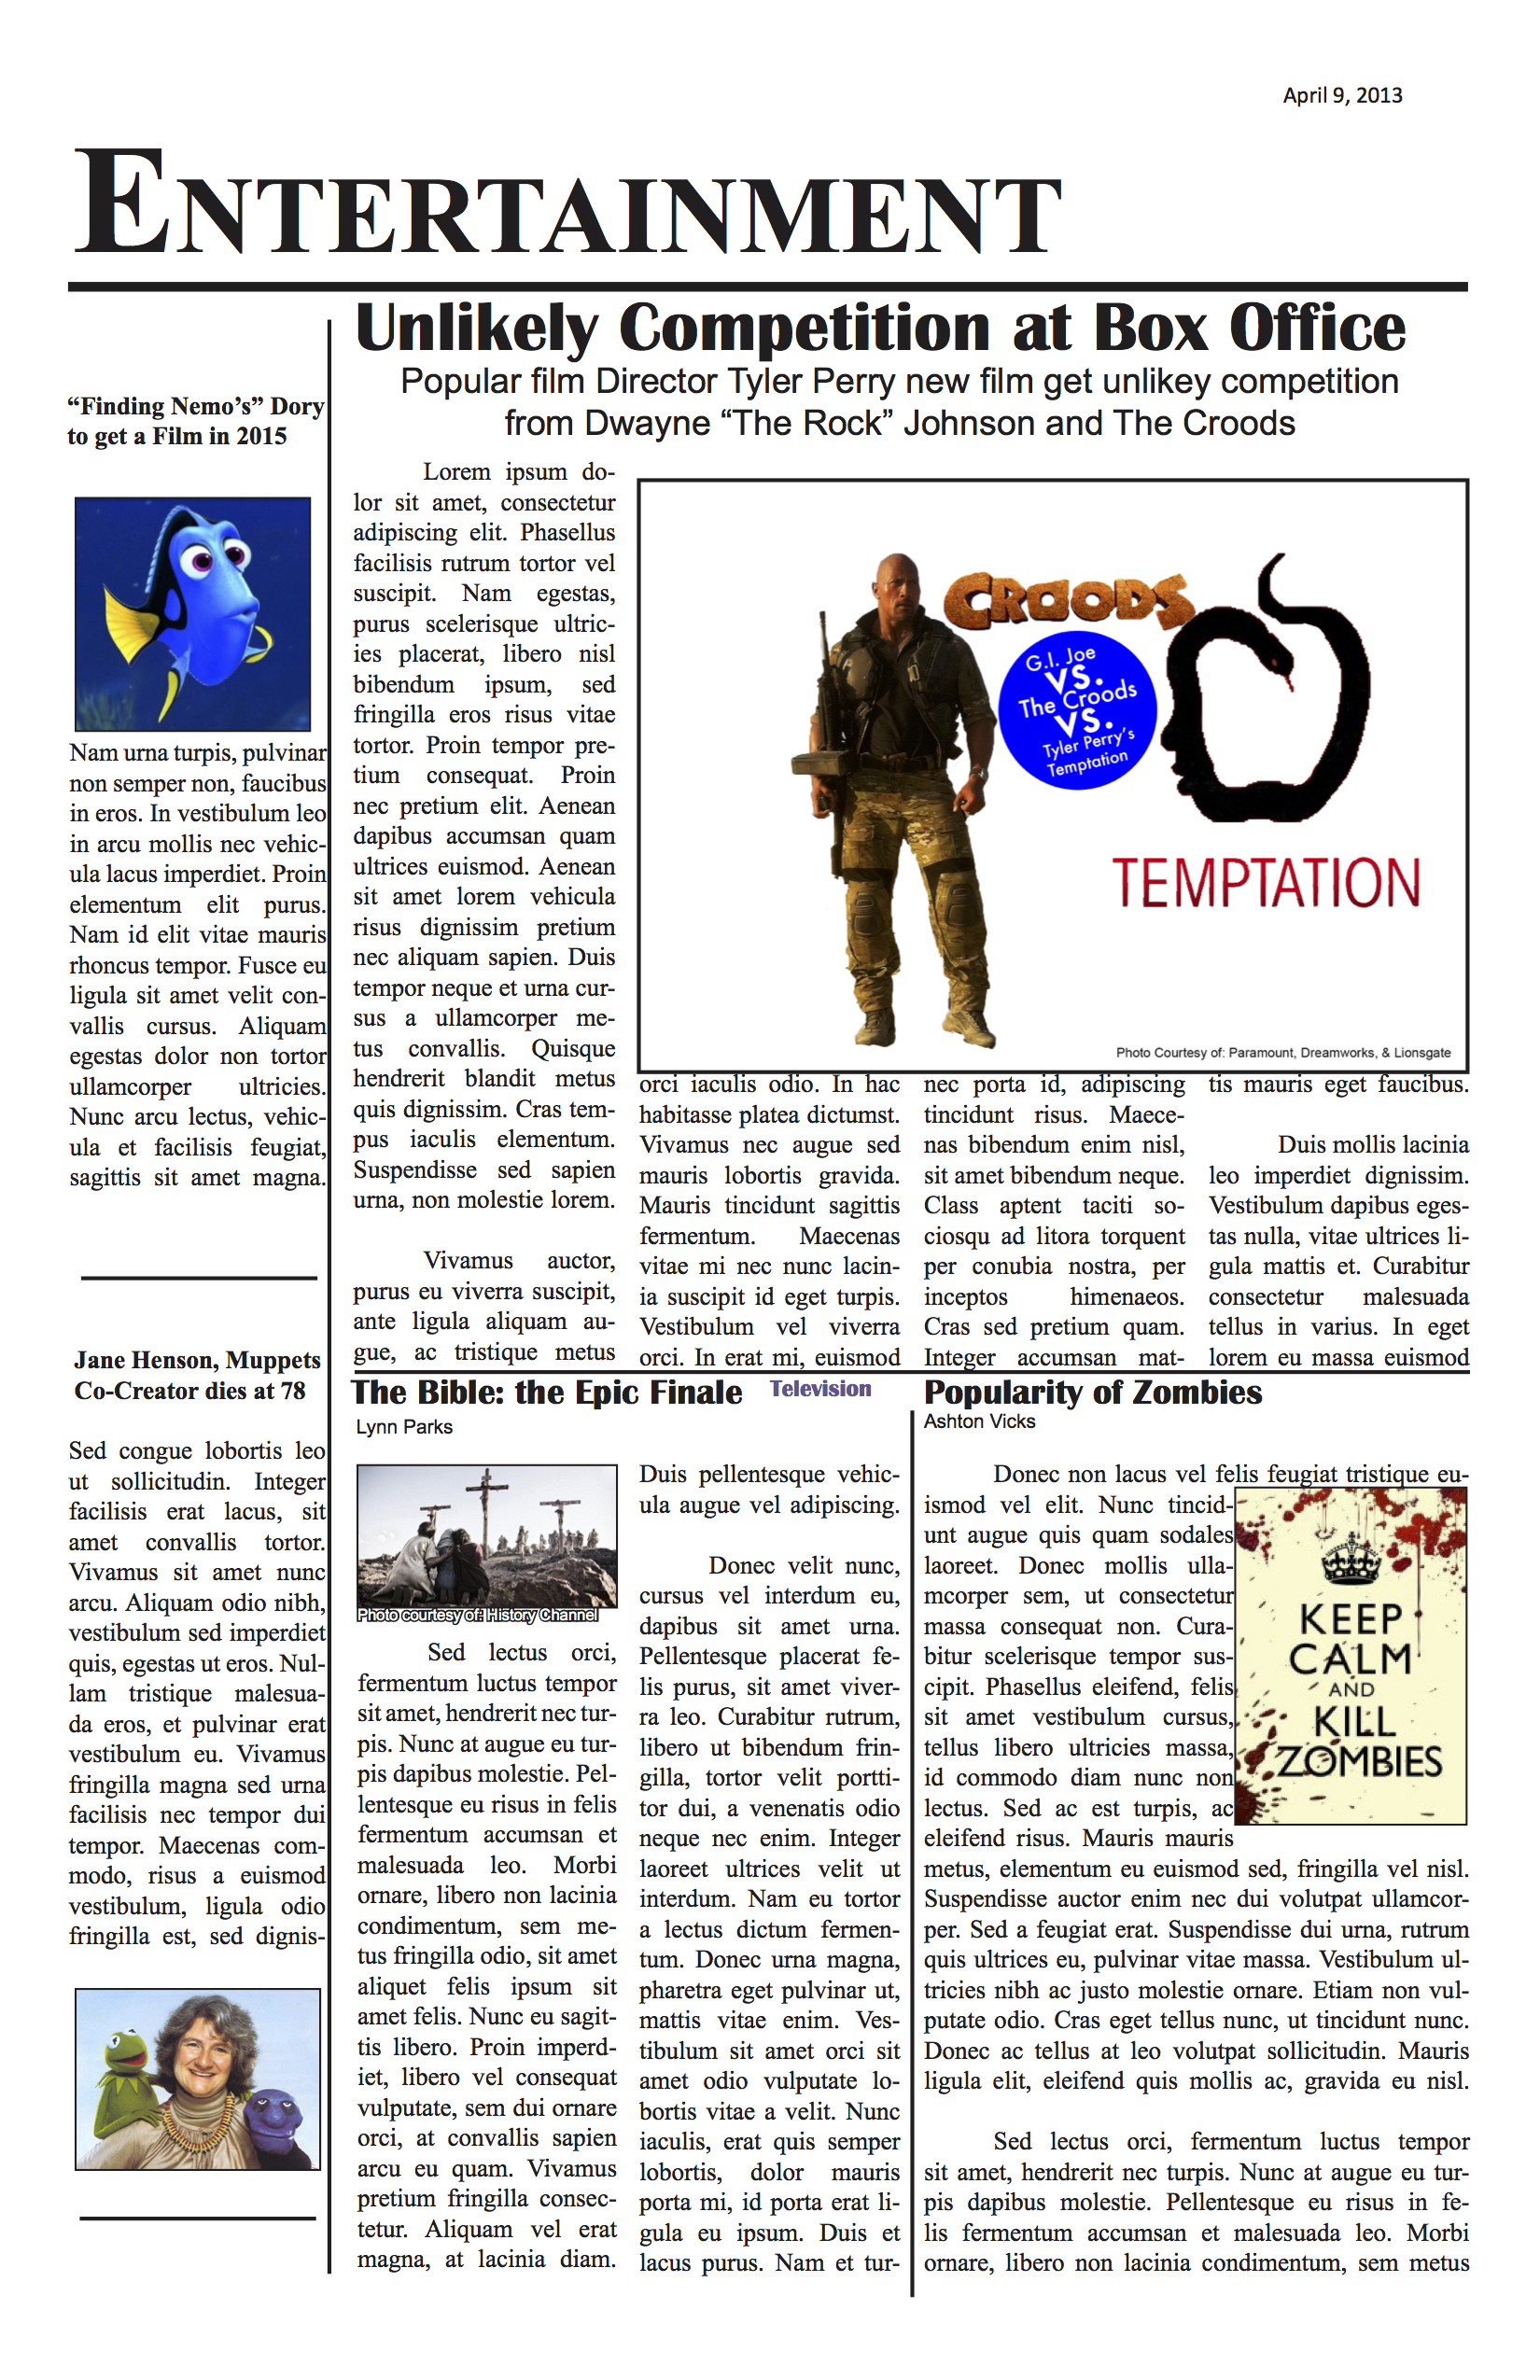 A testament to 2013, this Entertainment section of a mock newspaper features headlines true to the time by keeping up with popular movies and headlines that would be shown in a real newspaper. This is a companion to the newspaper section to the right.